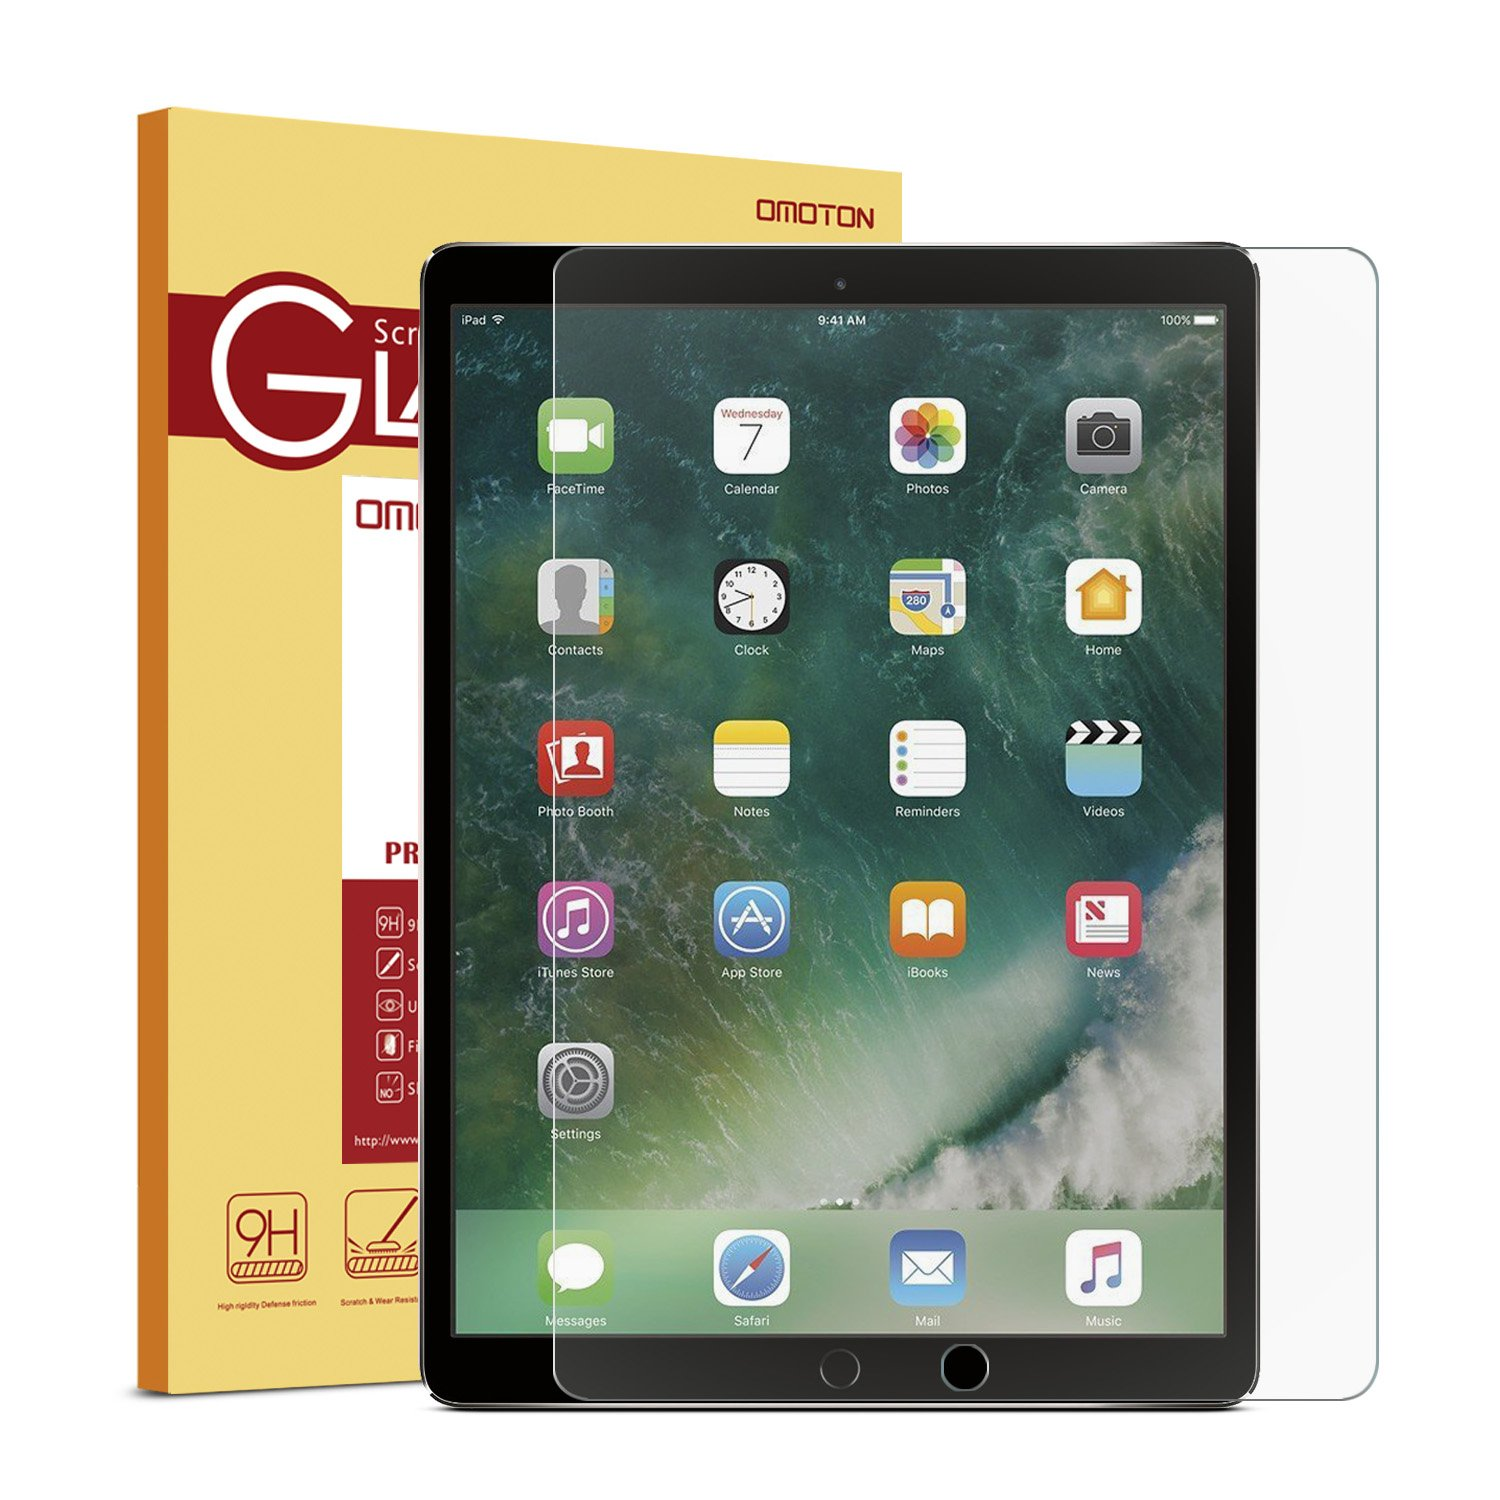 OMOTON New iPad Pro 12.9 Screen Protector, Tempered Glass Screen Protector with [High Responsivity] [High Definiton] [Bubble Free] for Apple iPad Pro 12.9 inch (2017 and 2015 version)